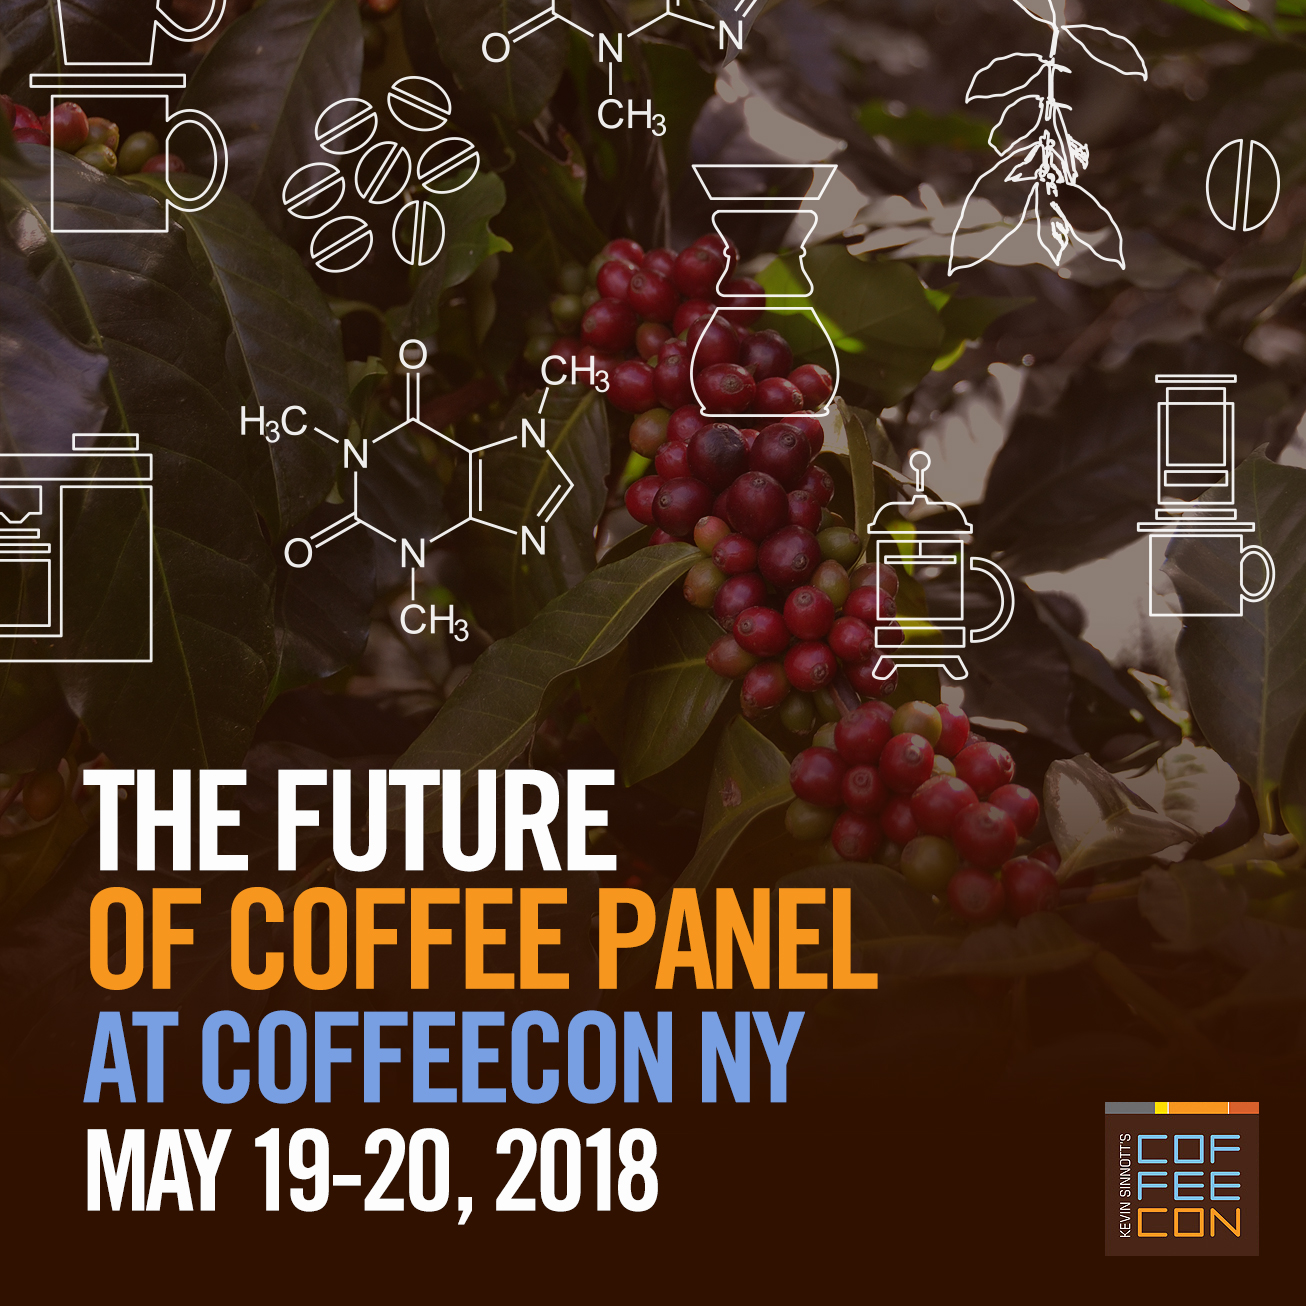 The Future of Coffee Panel at CoffeeConNY